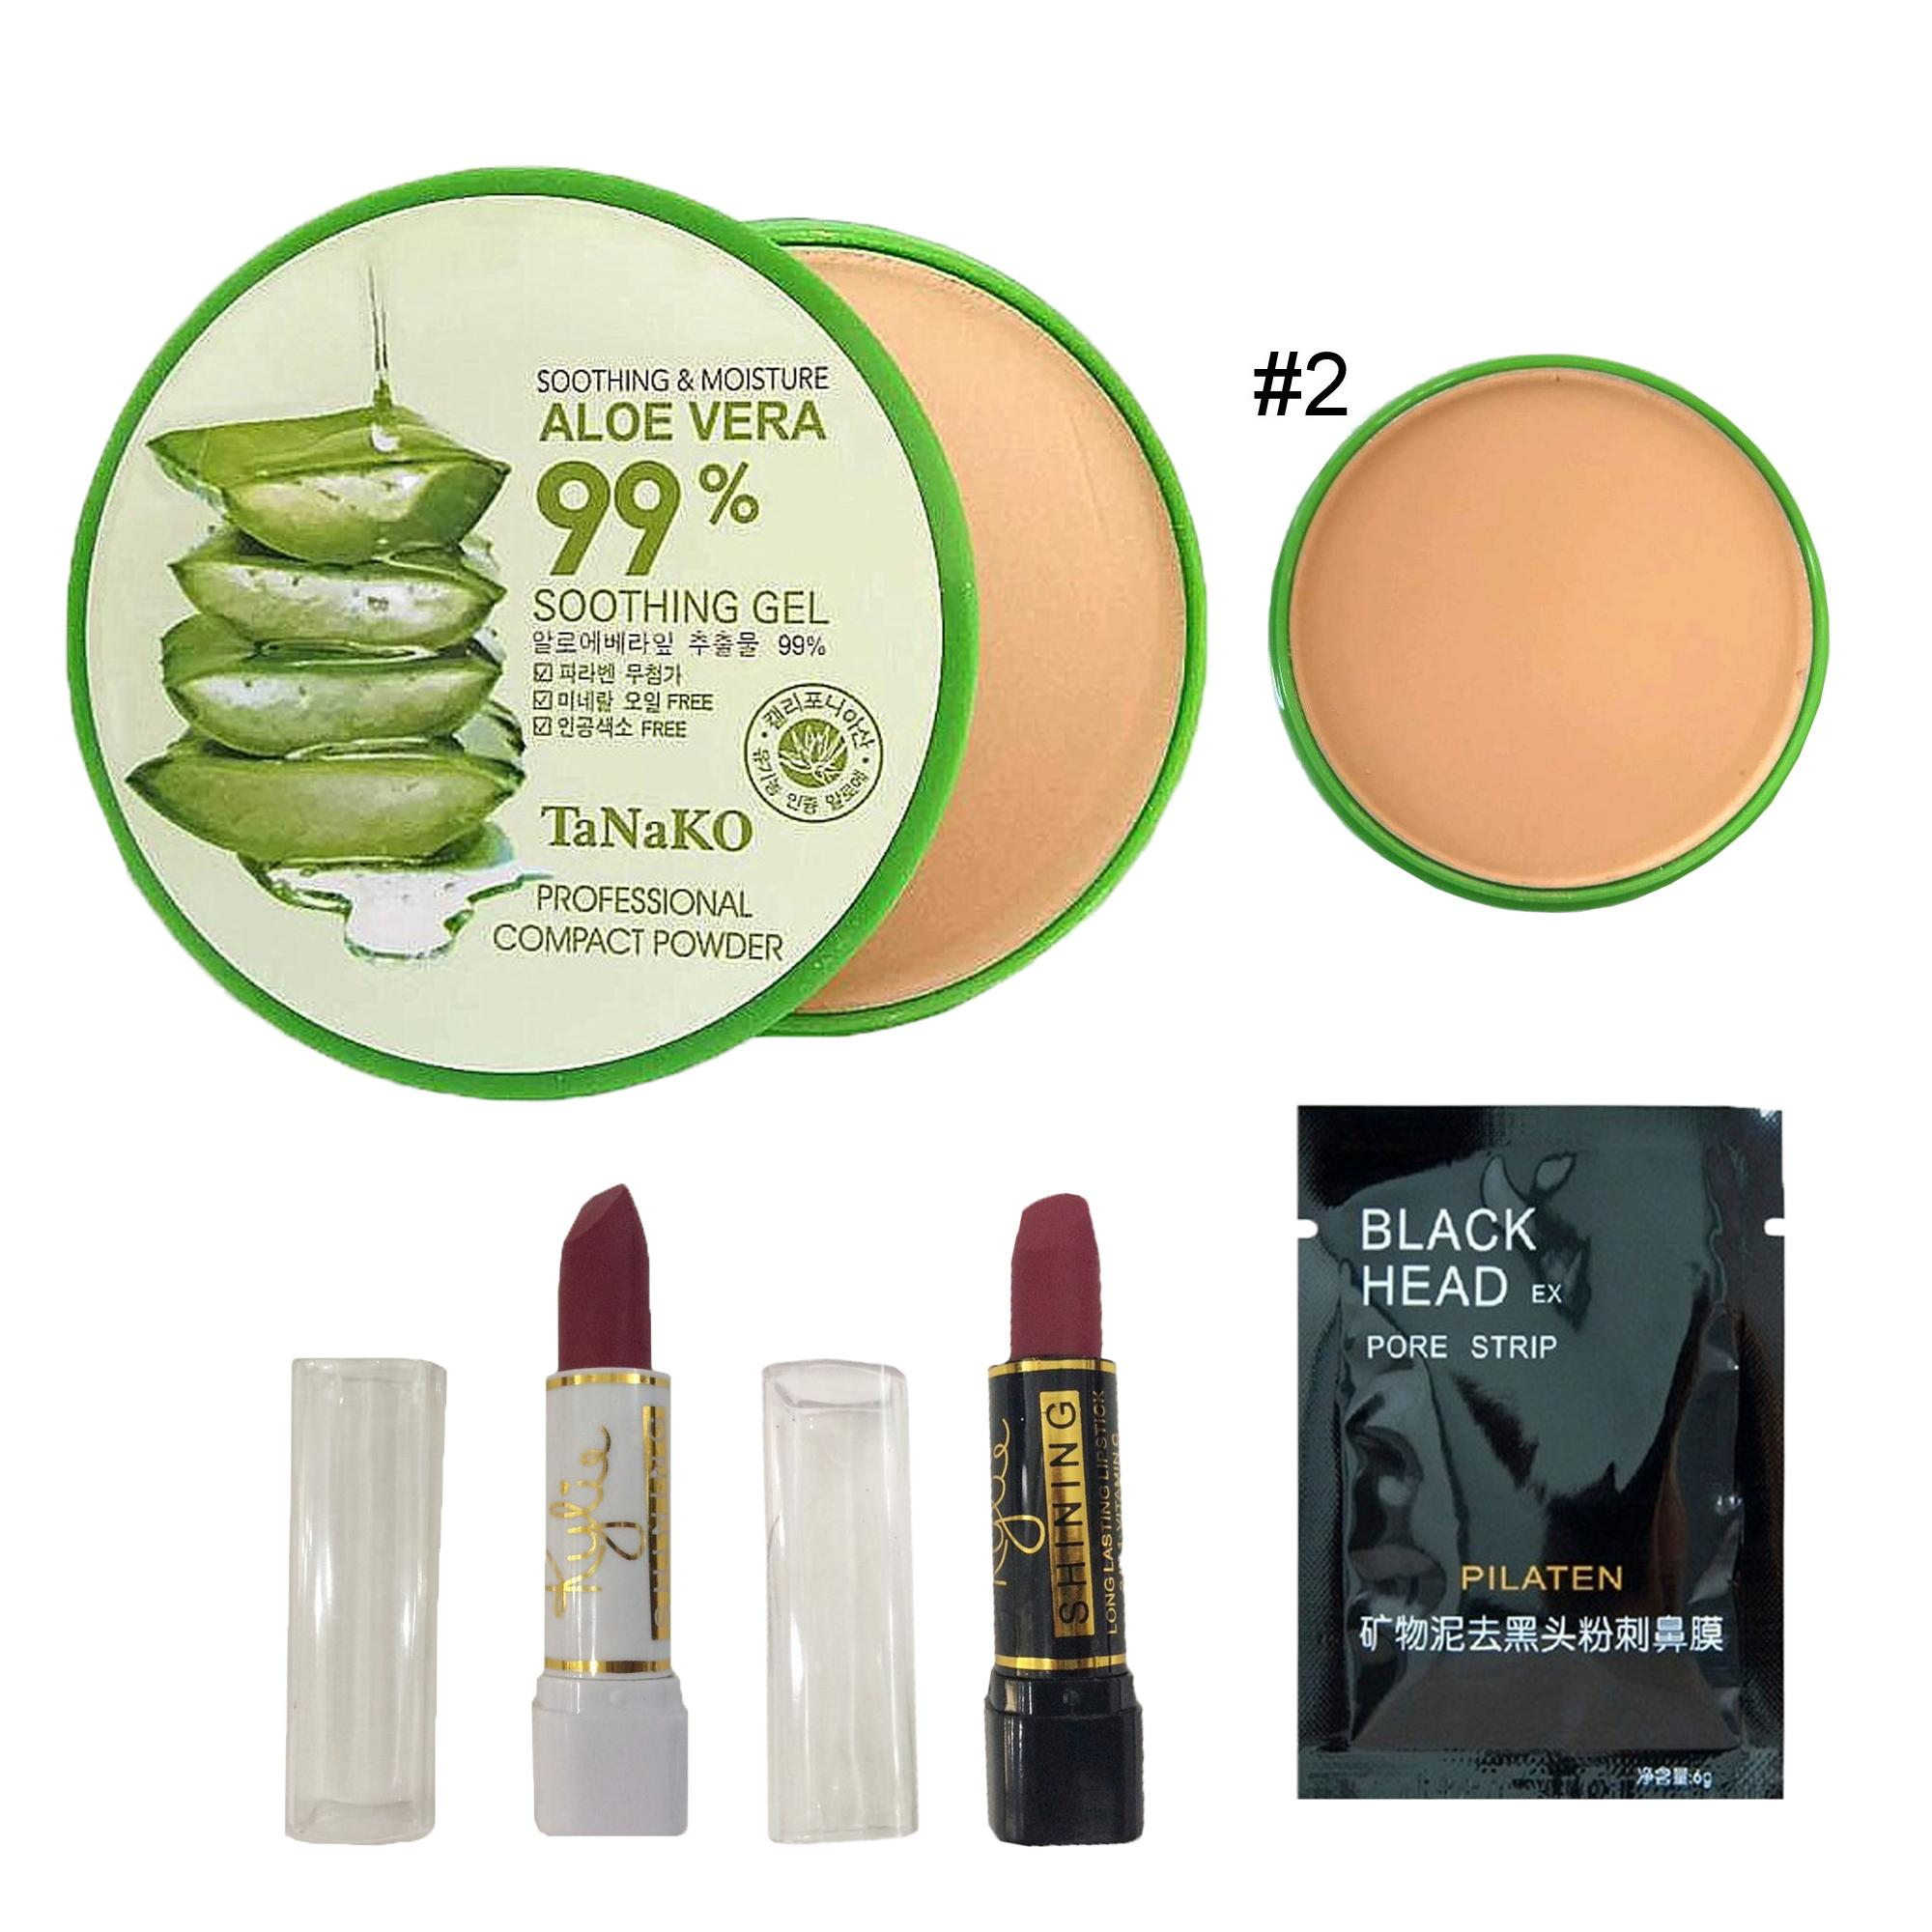 MAKEUP BUNDLE 99% Aloe Vera Soothing & Moisture Compact Powder #02 12g + 2 Pcs, Lipstick FREE 1 Sachet Pilaten Philippines